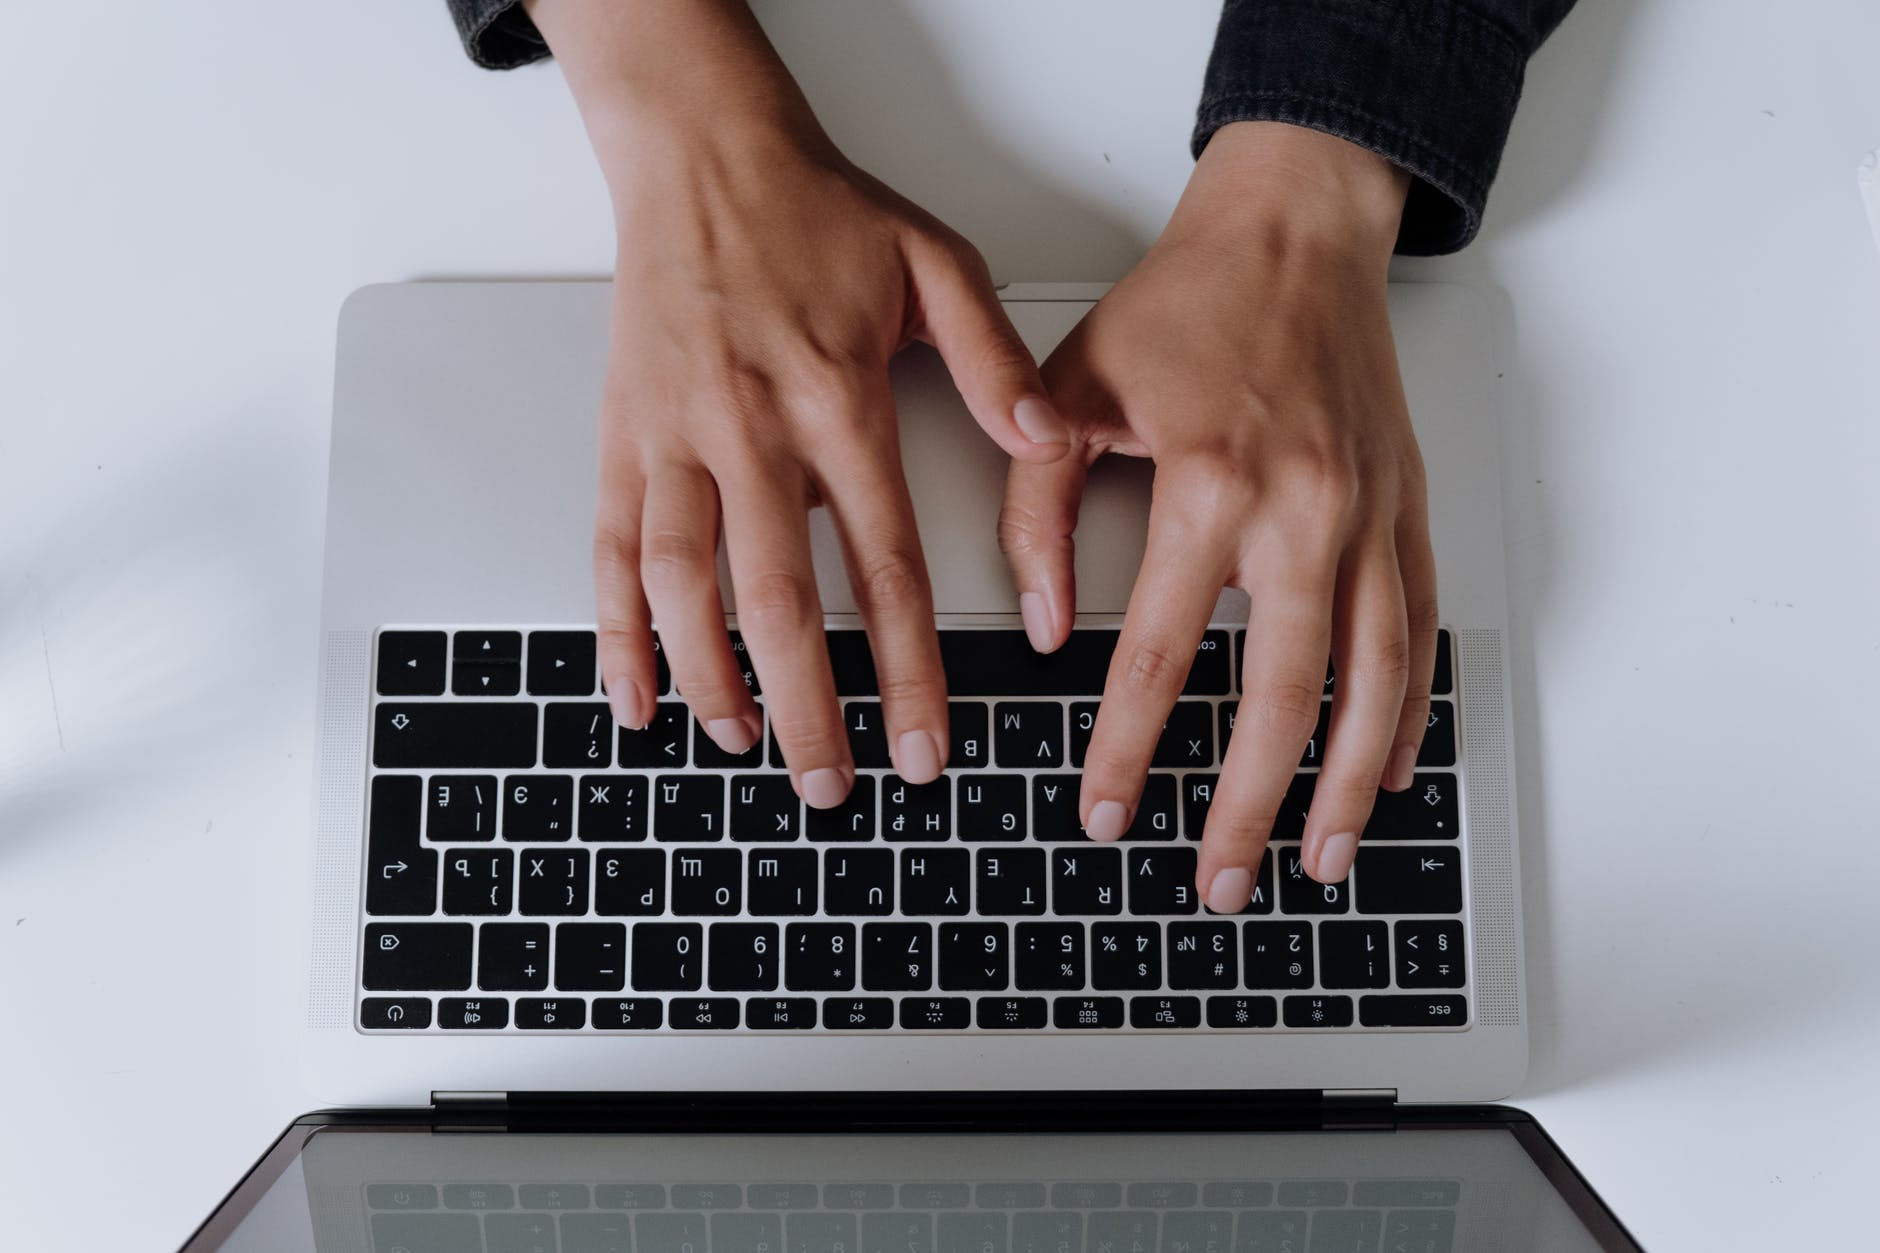 persons hand on silver and black laptop computer